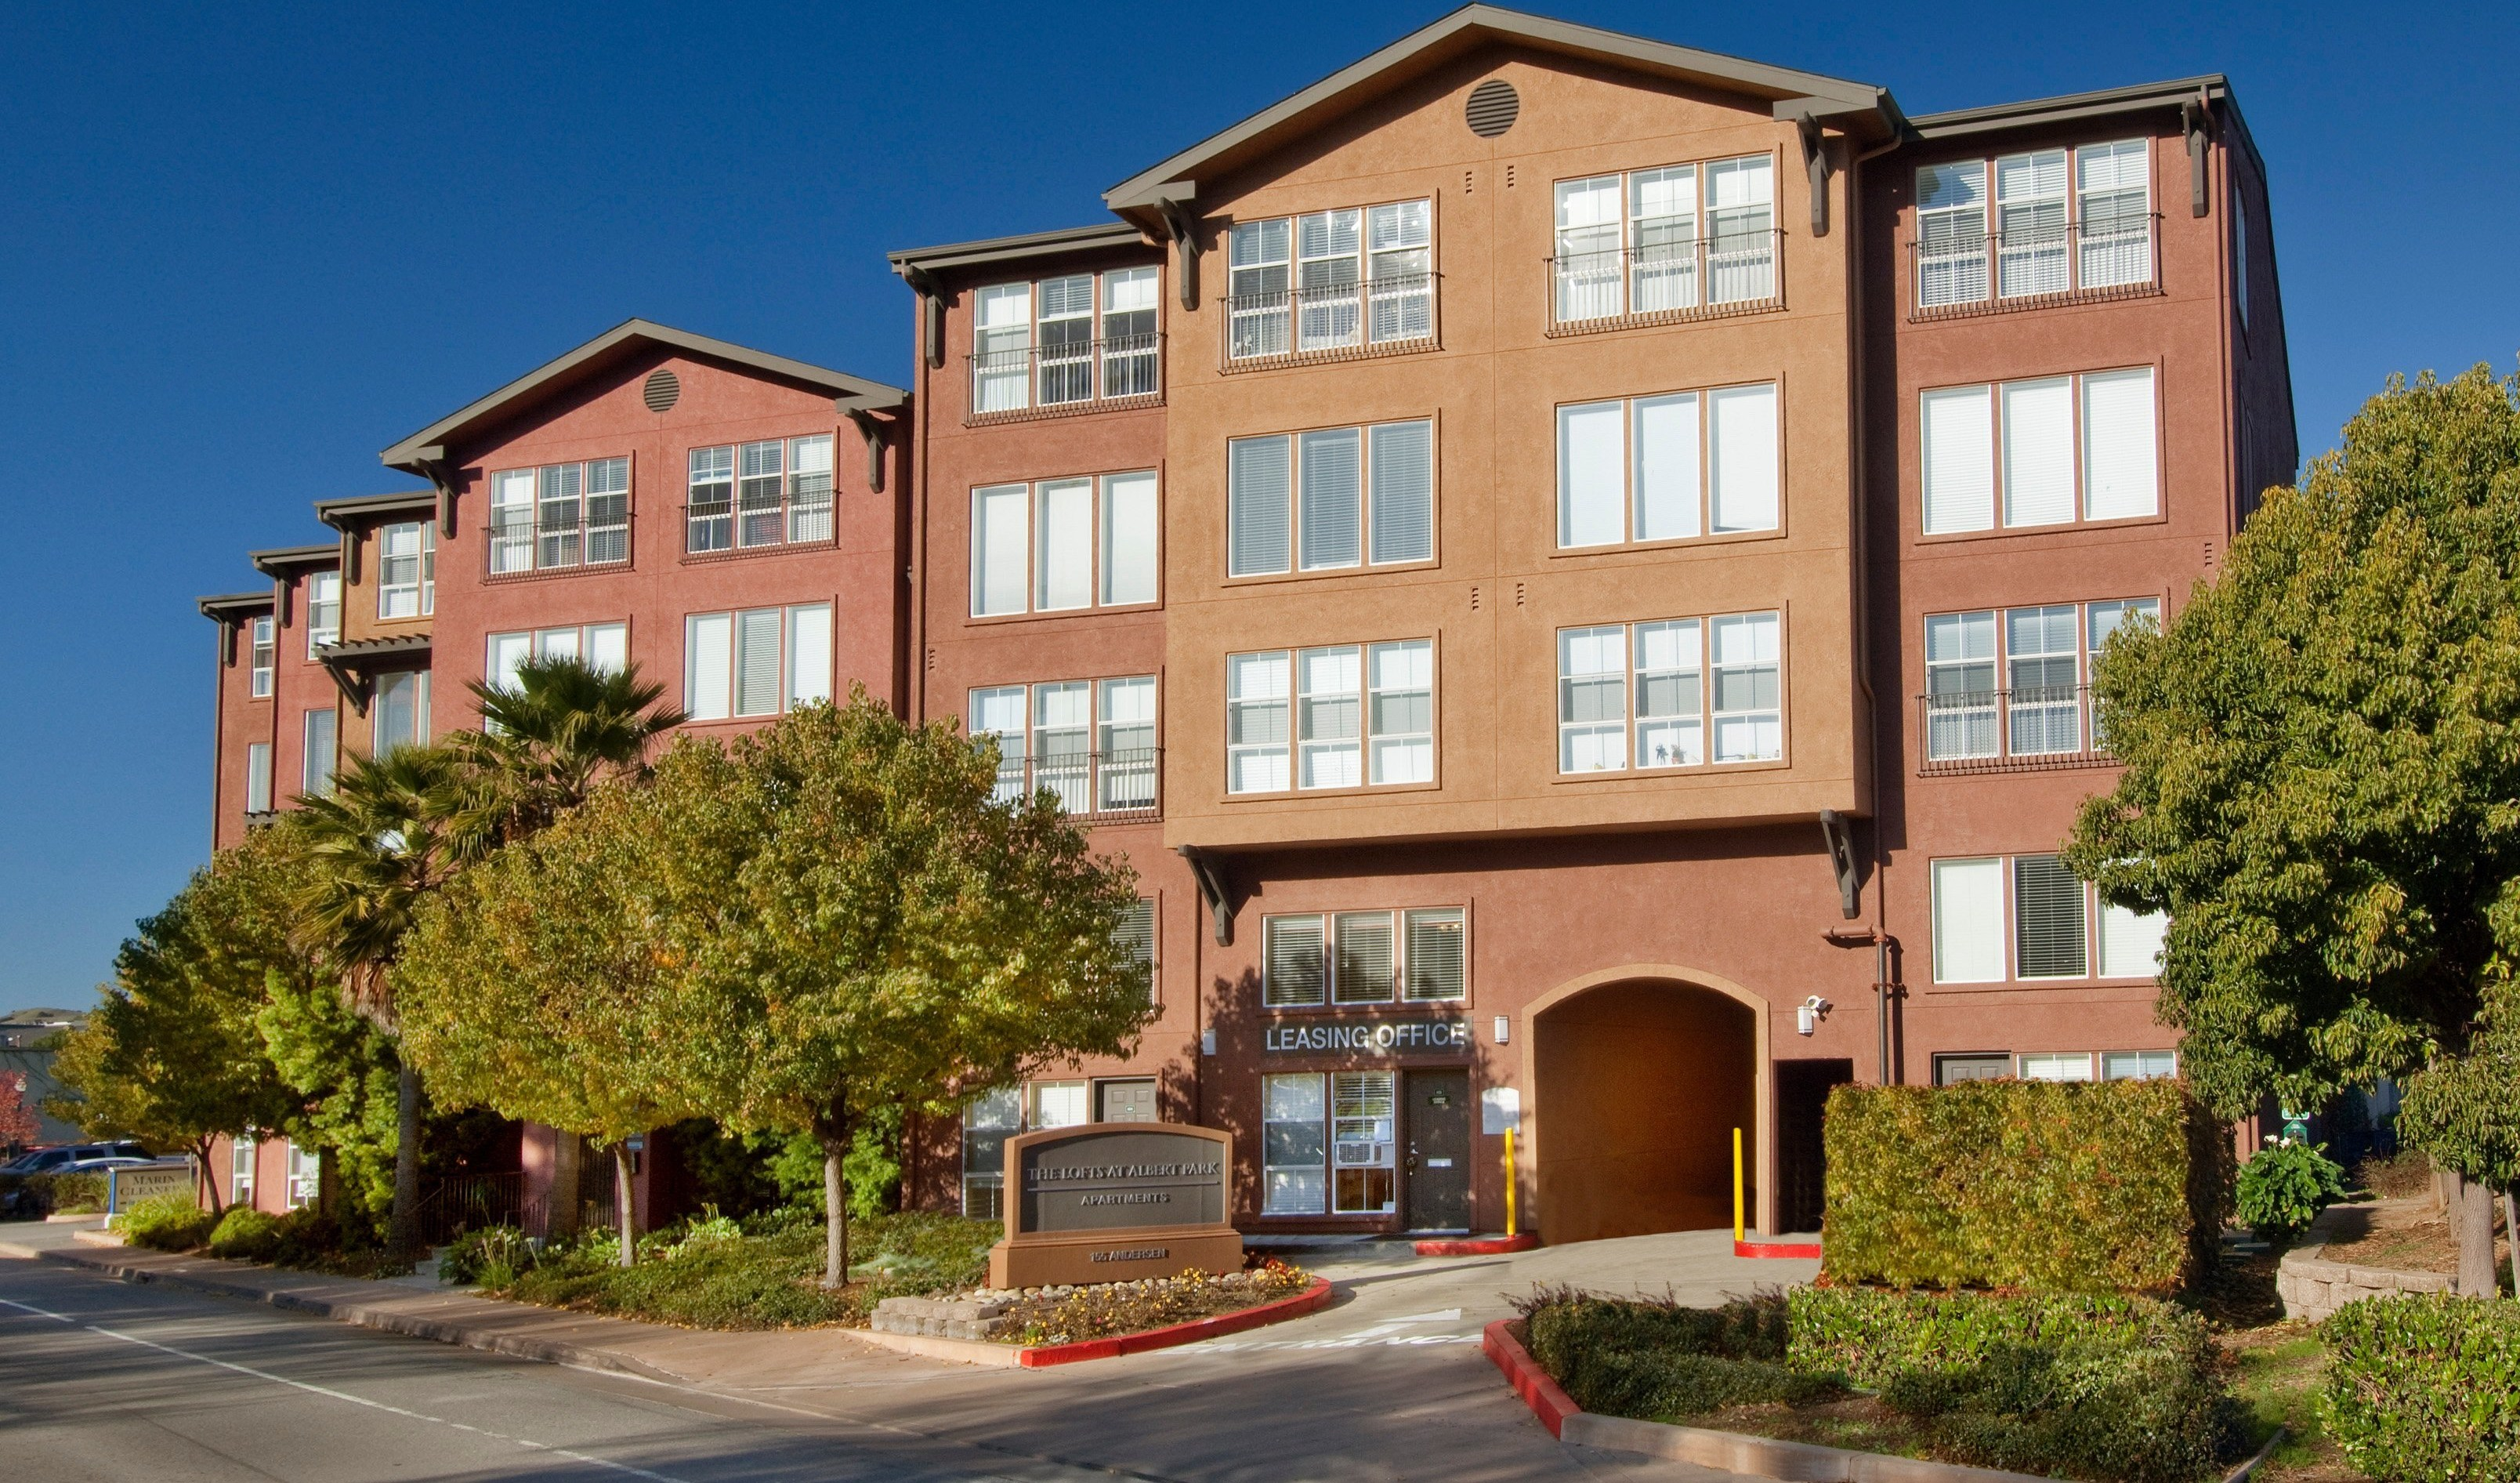 20 Best Apartments In Larkspur, CA (with pictures)!